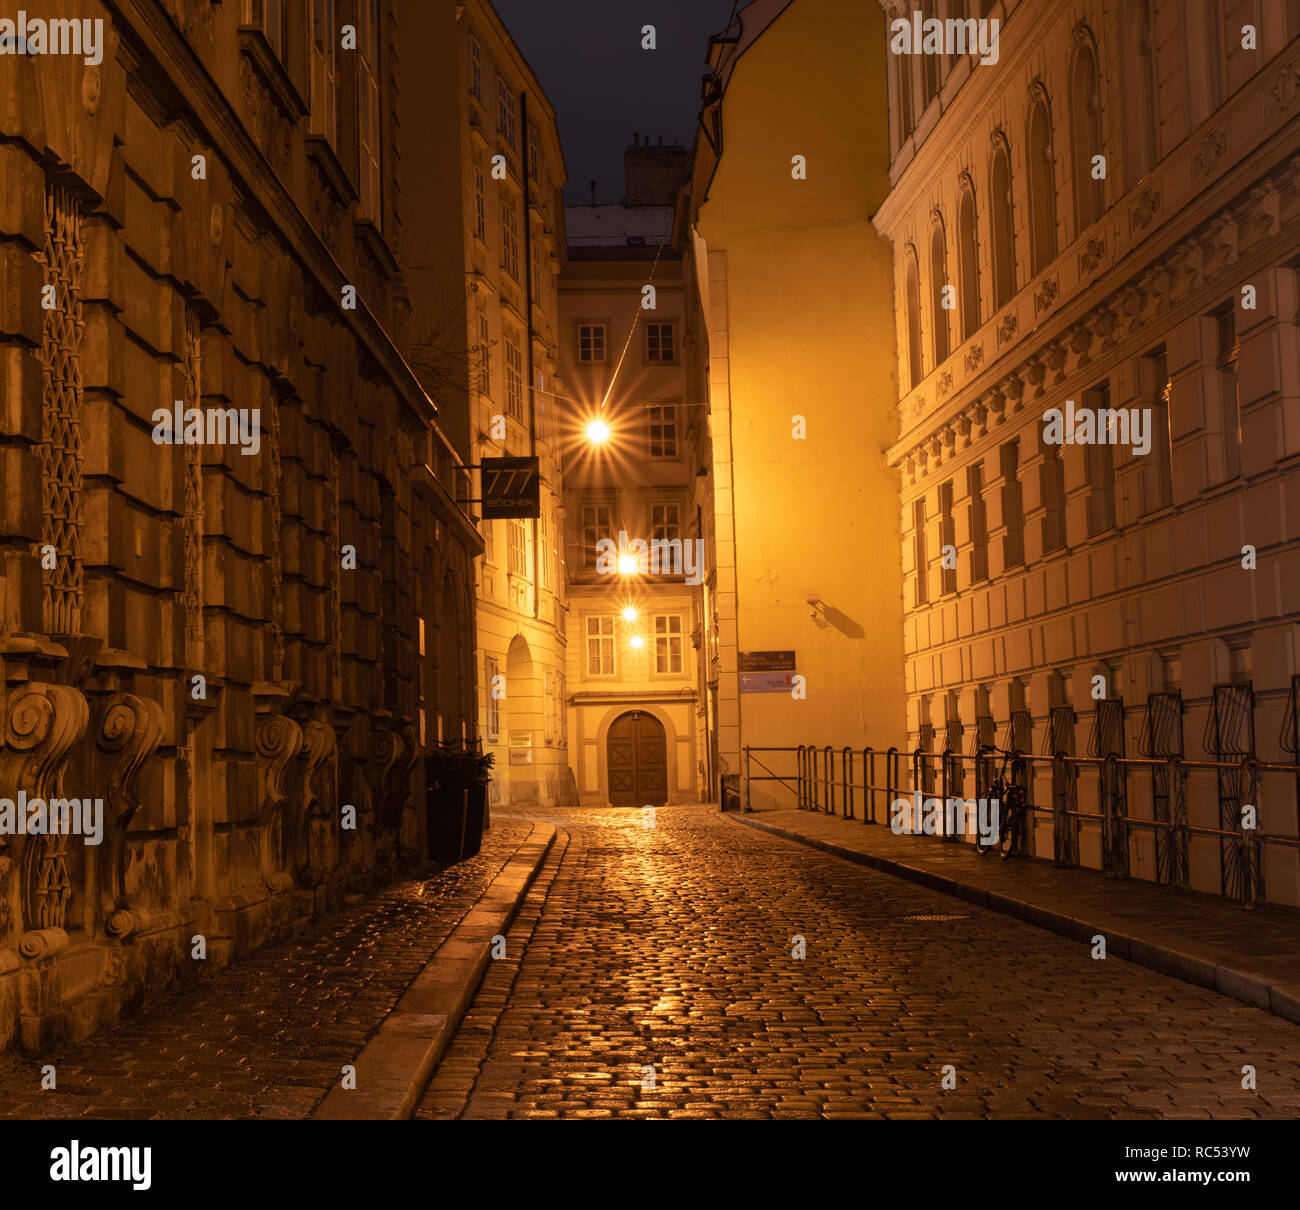 Domgasse, Vienna - Stock Image